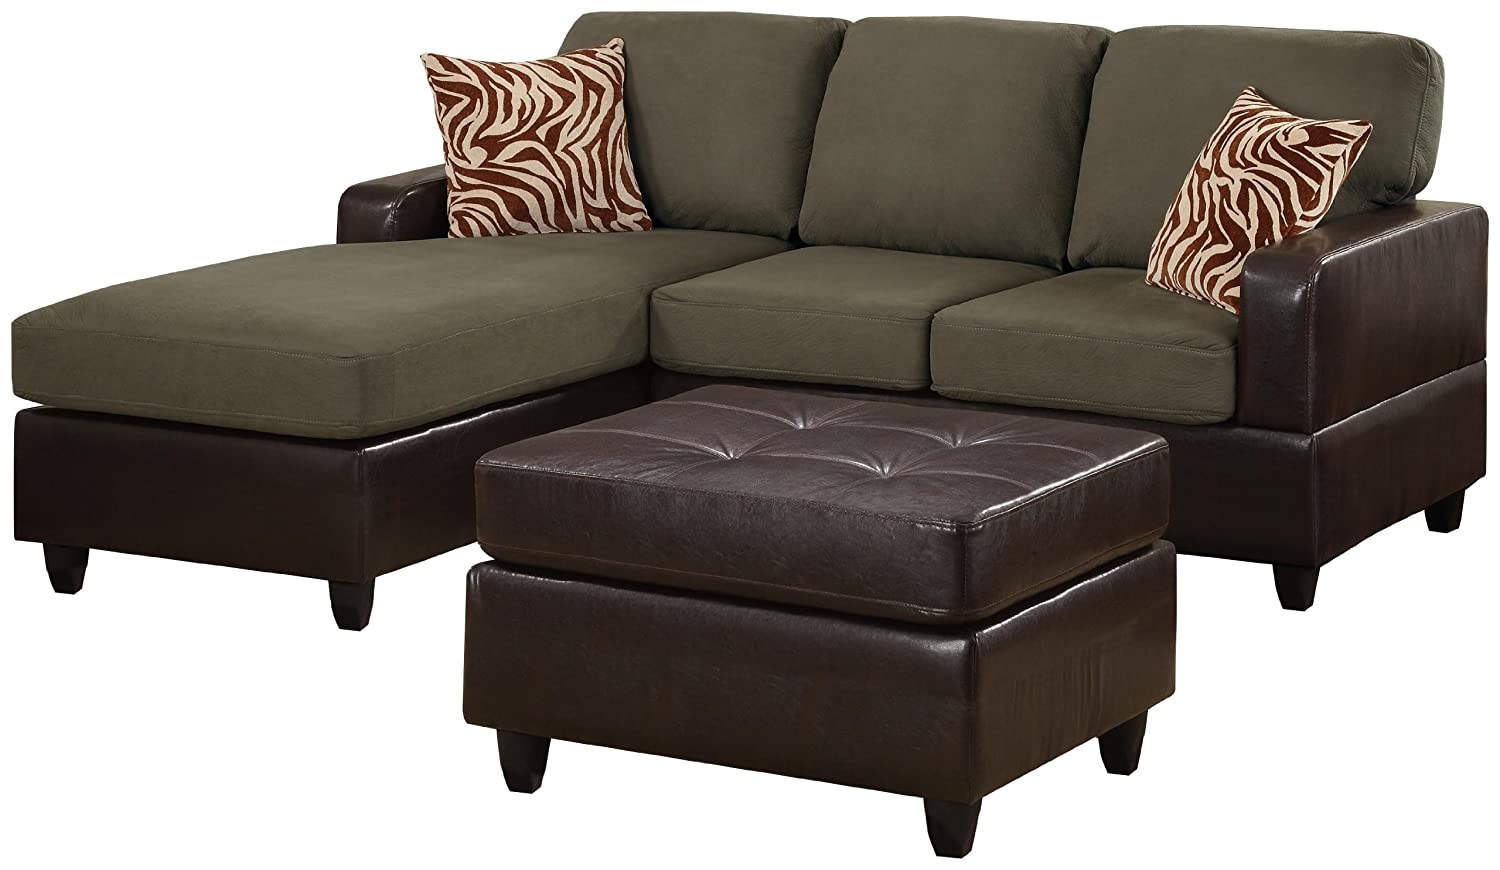 amazoncom bobkona manhattan reversible microfiber 3piece sectional sofa with faux leather ottoman in sage color kitchen u0026 dining